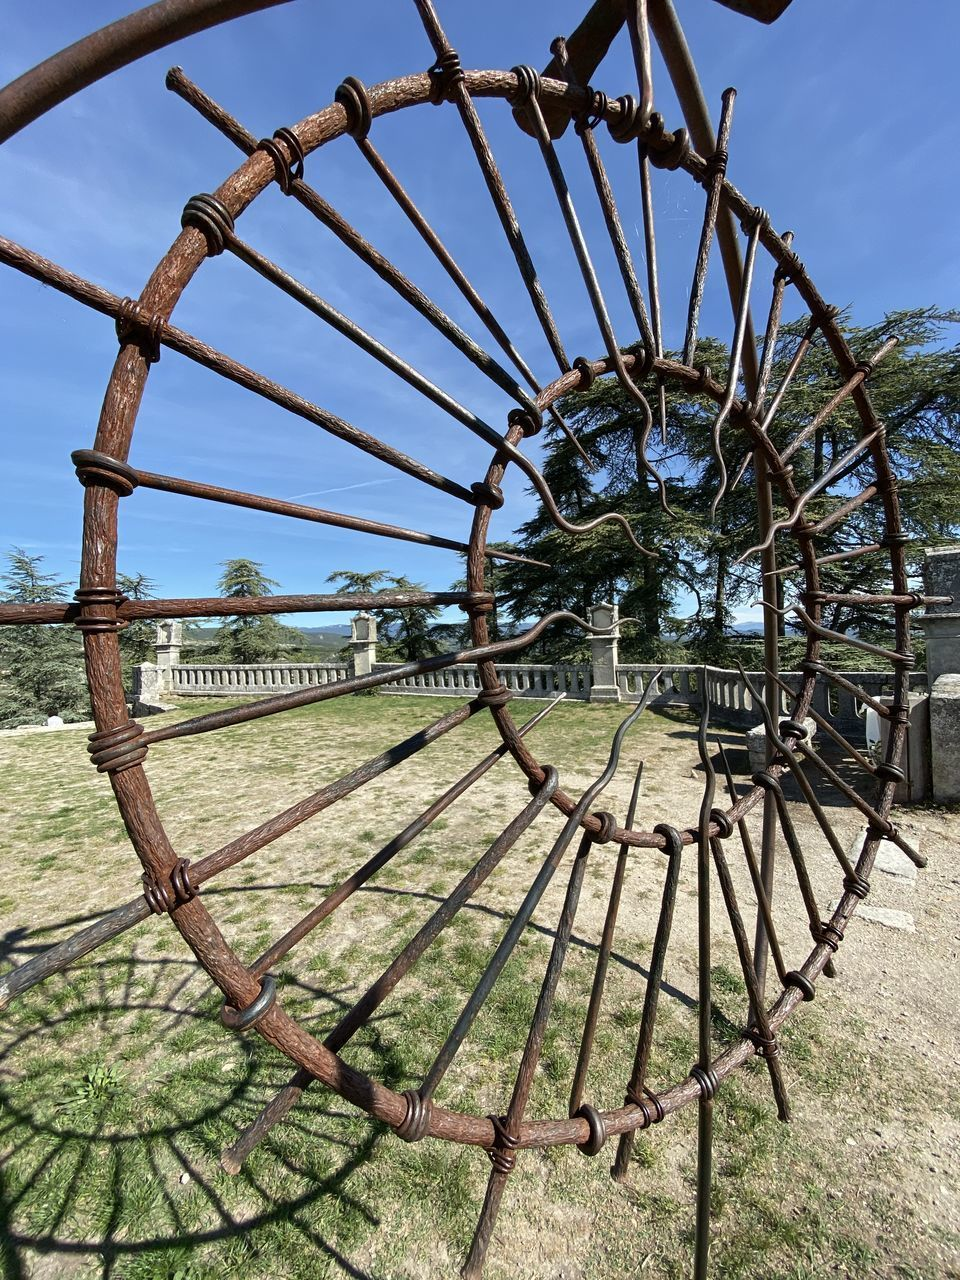 sky, day, nature, metal, tree, no people, plant, wheel, outdoors, rusty, land, shape, old, field, geometric shape, design, pattern, circle, built structure, barrier, spoke